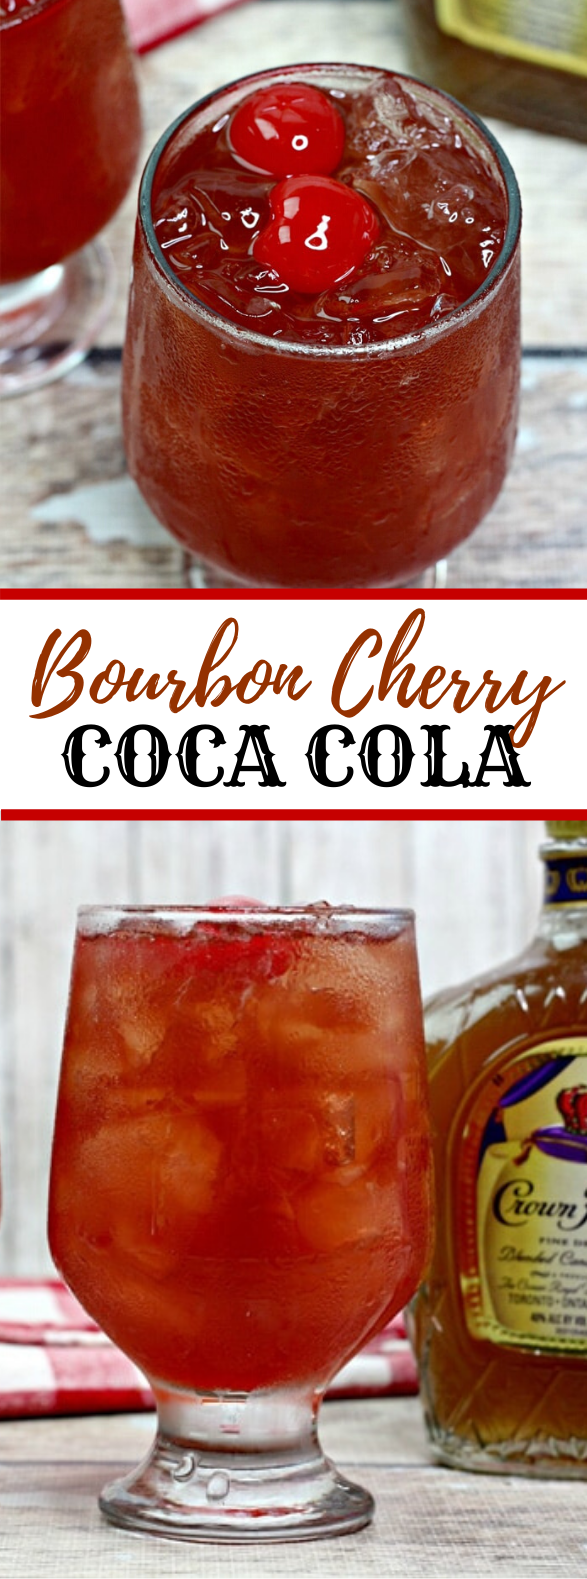 BOURBON CHERRY COKE #drinks #cocktails